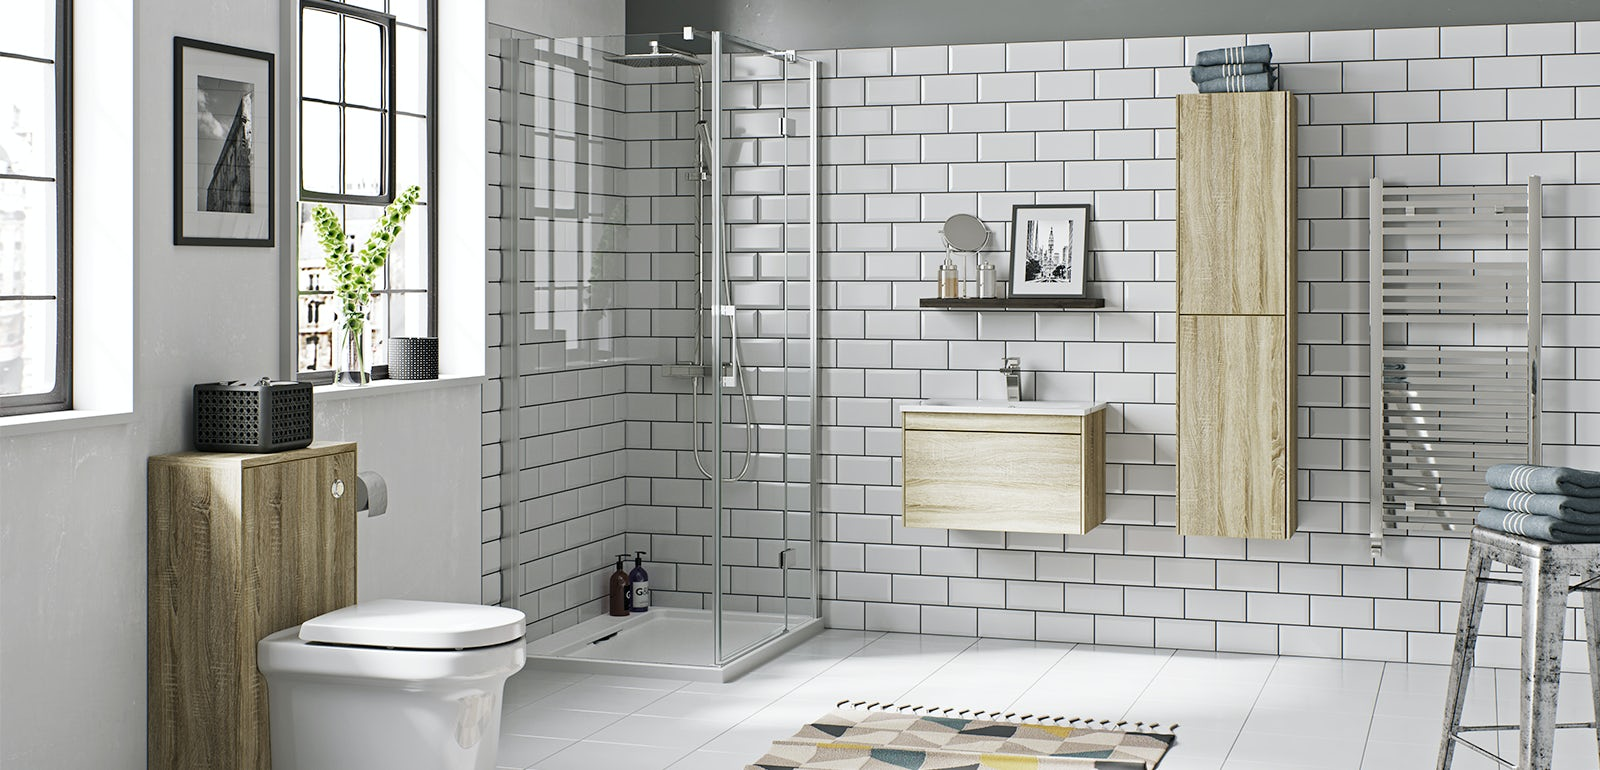 3 things you must check before hiring a bathroom fitter